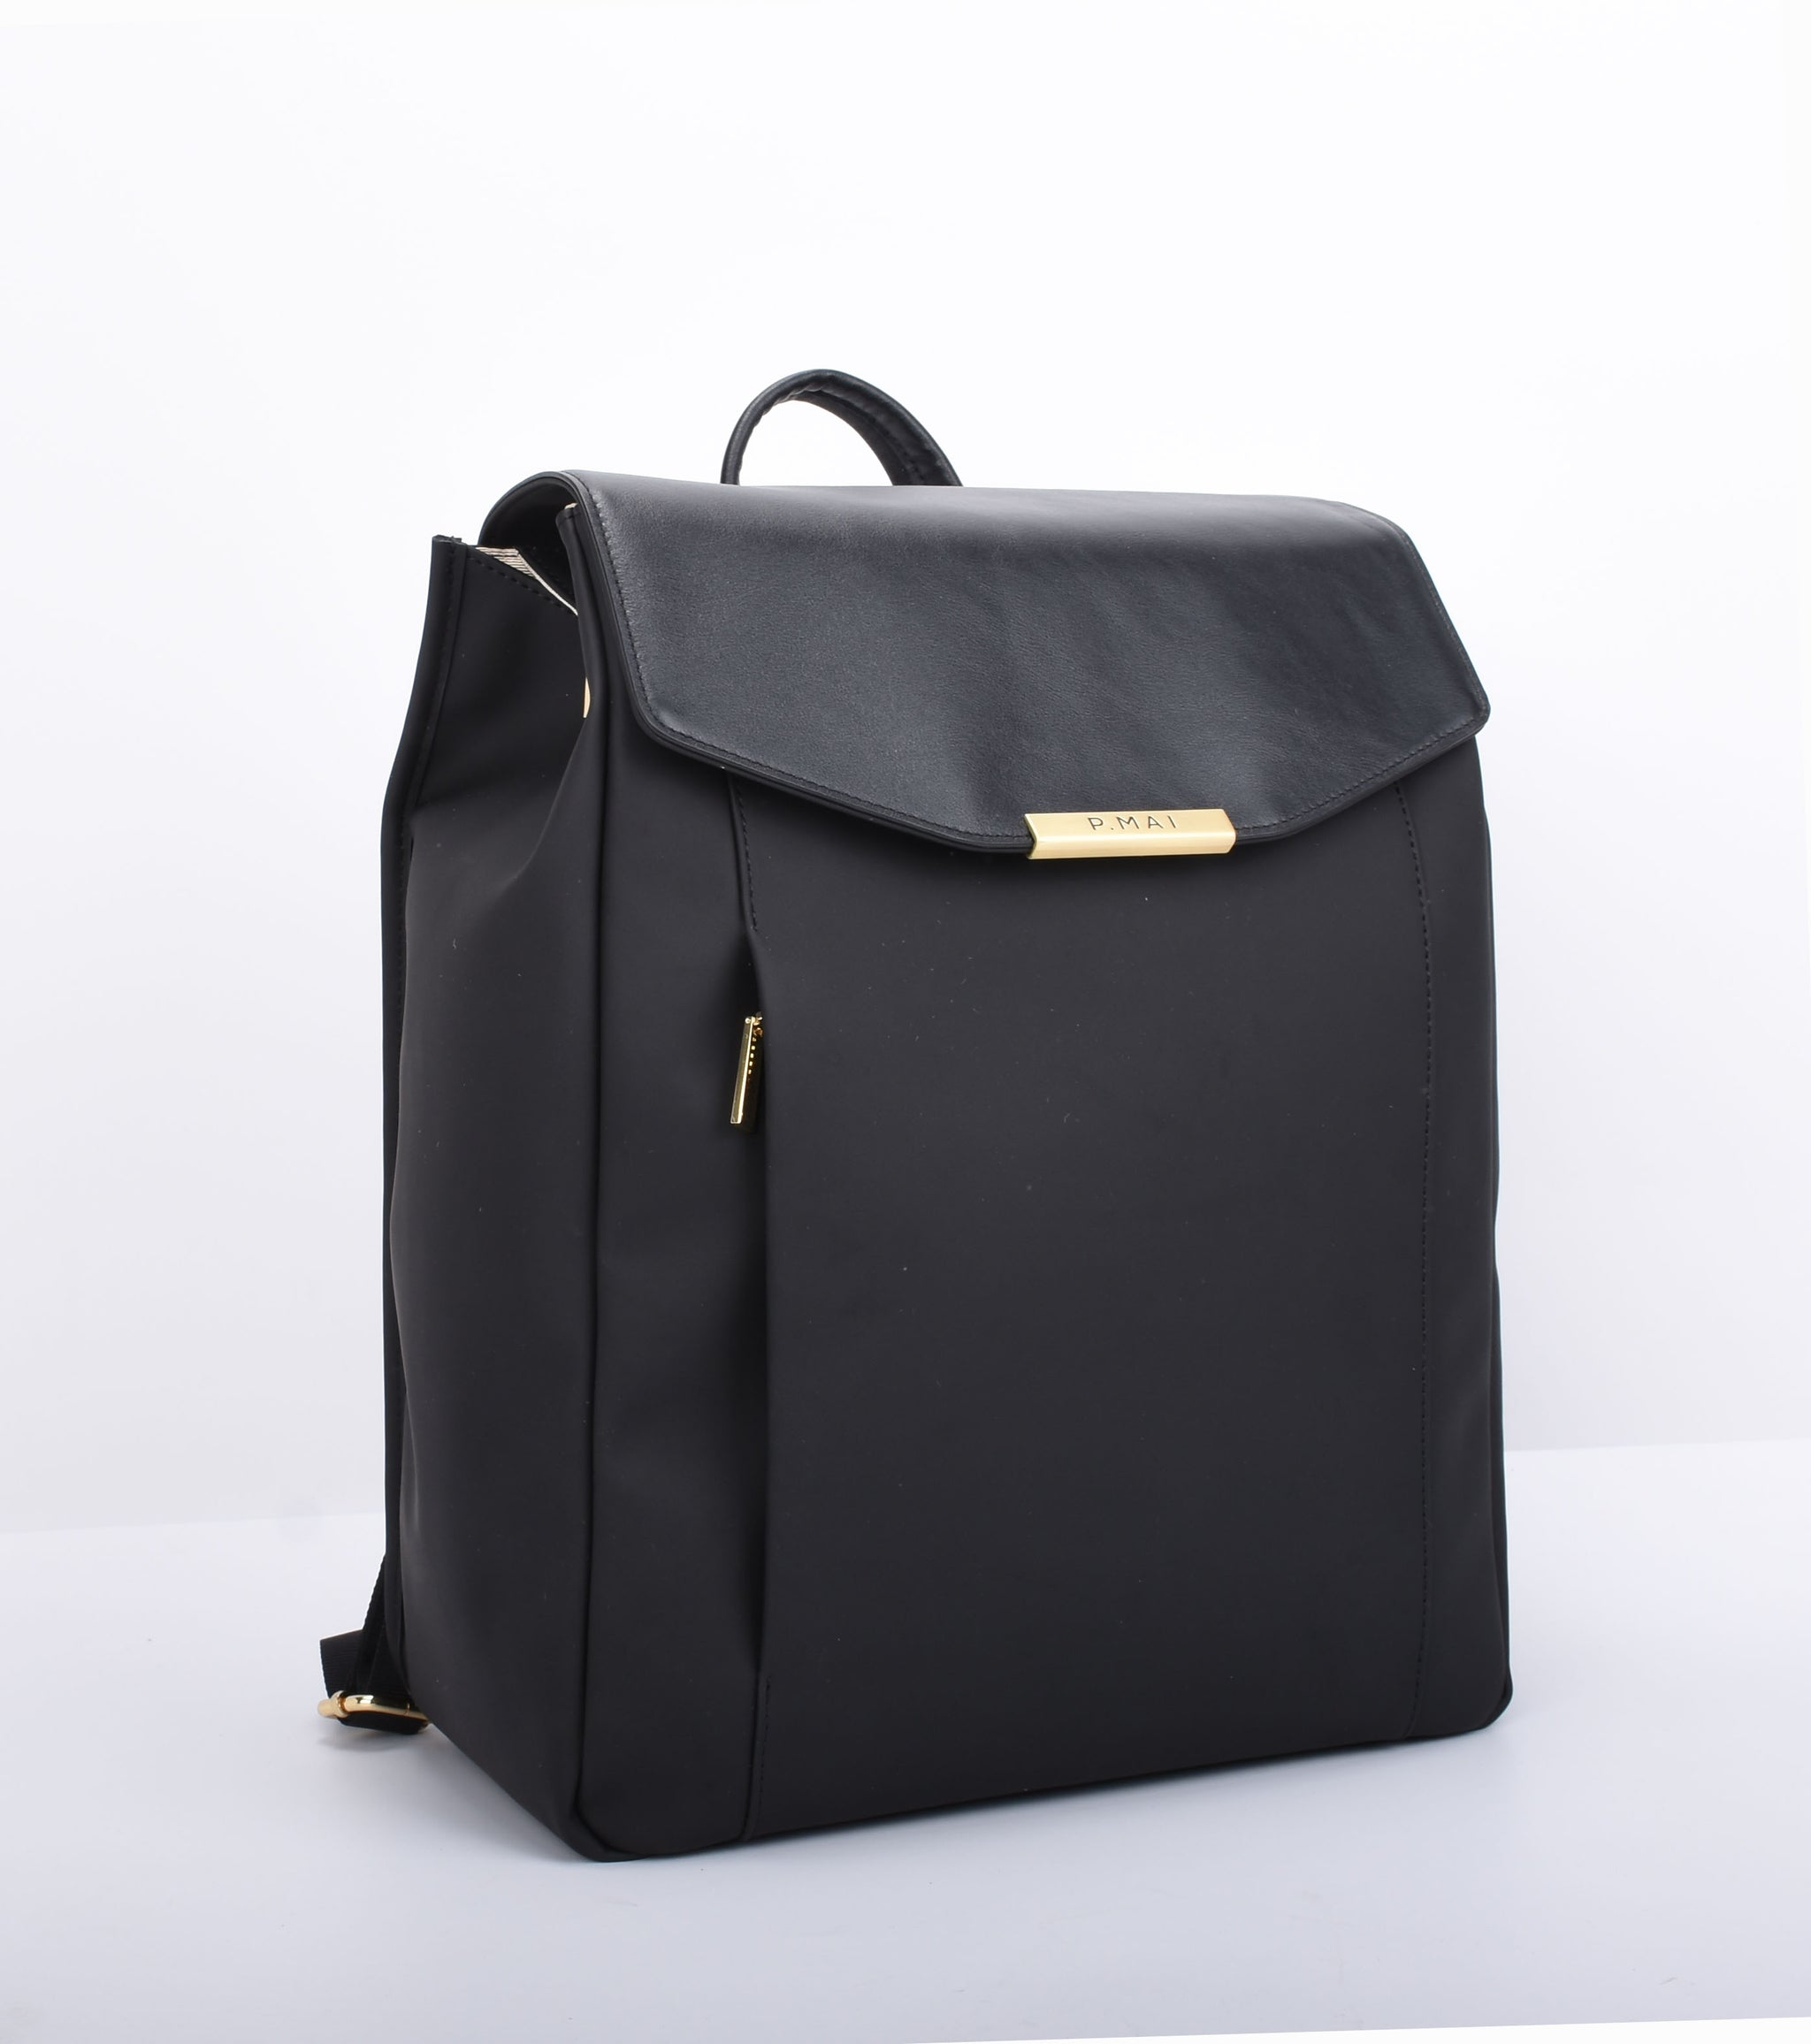 P.MAI best professional vegan leather laptop backpack for women, 15-inch executive laptop and notebook computer designer luxury backpack ideal for work, school, travel and commuter | Astrid P.MAI